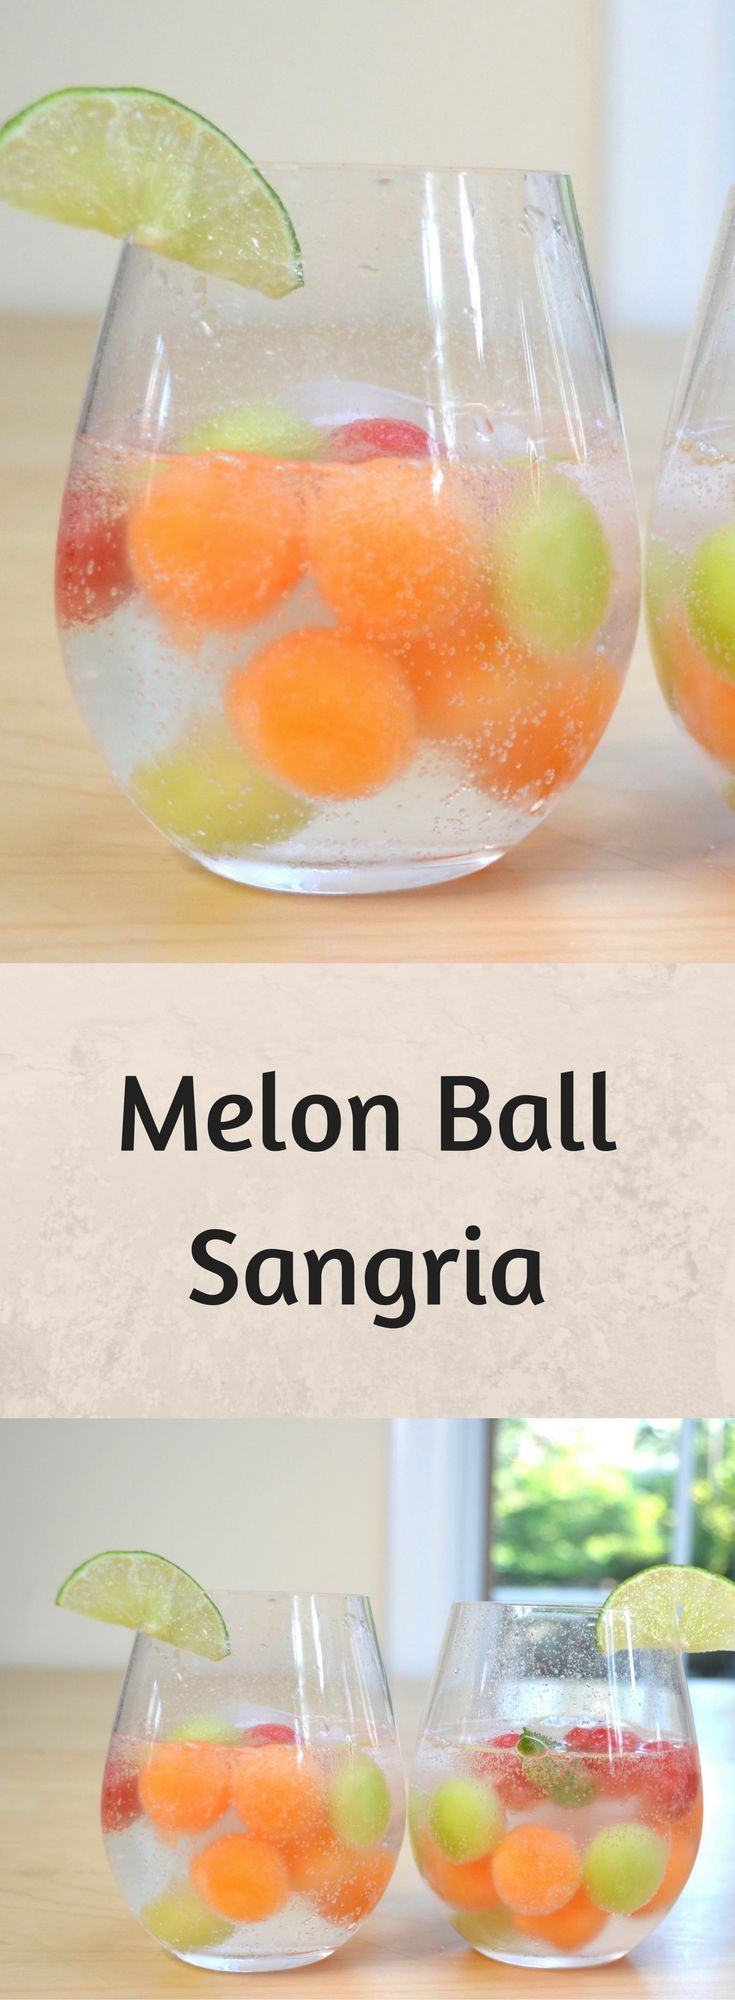 Melon Ball Sangria looks amazing and it tastes so good!  You'll love this Melon Ball Sangria - the best-looking drink and it's so easy to make!